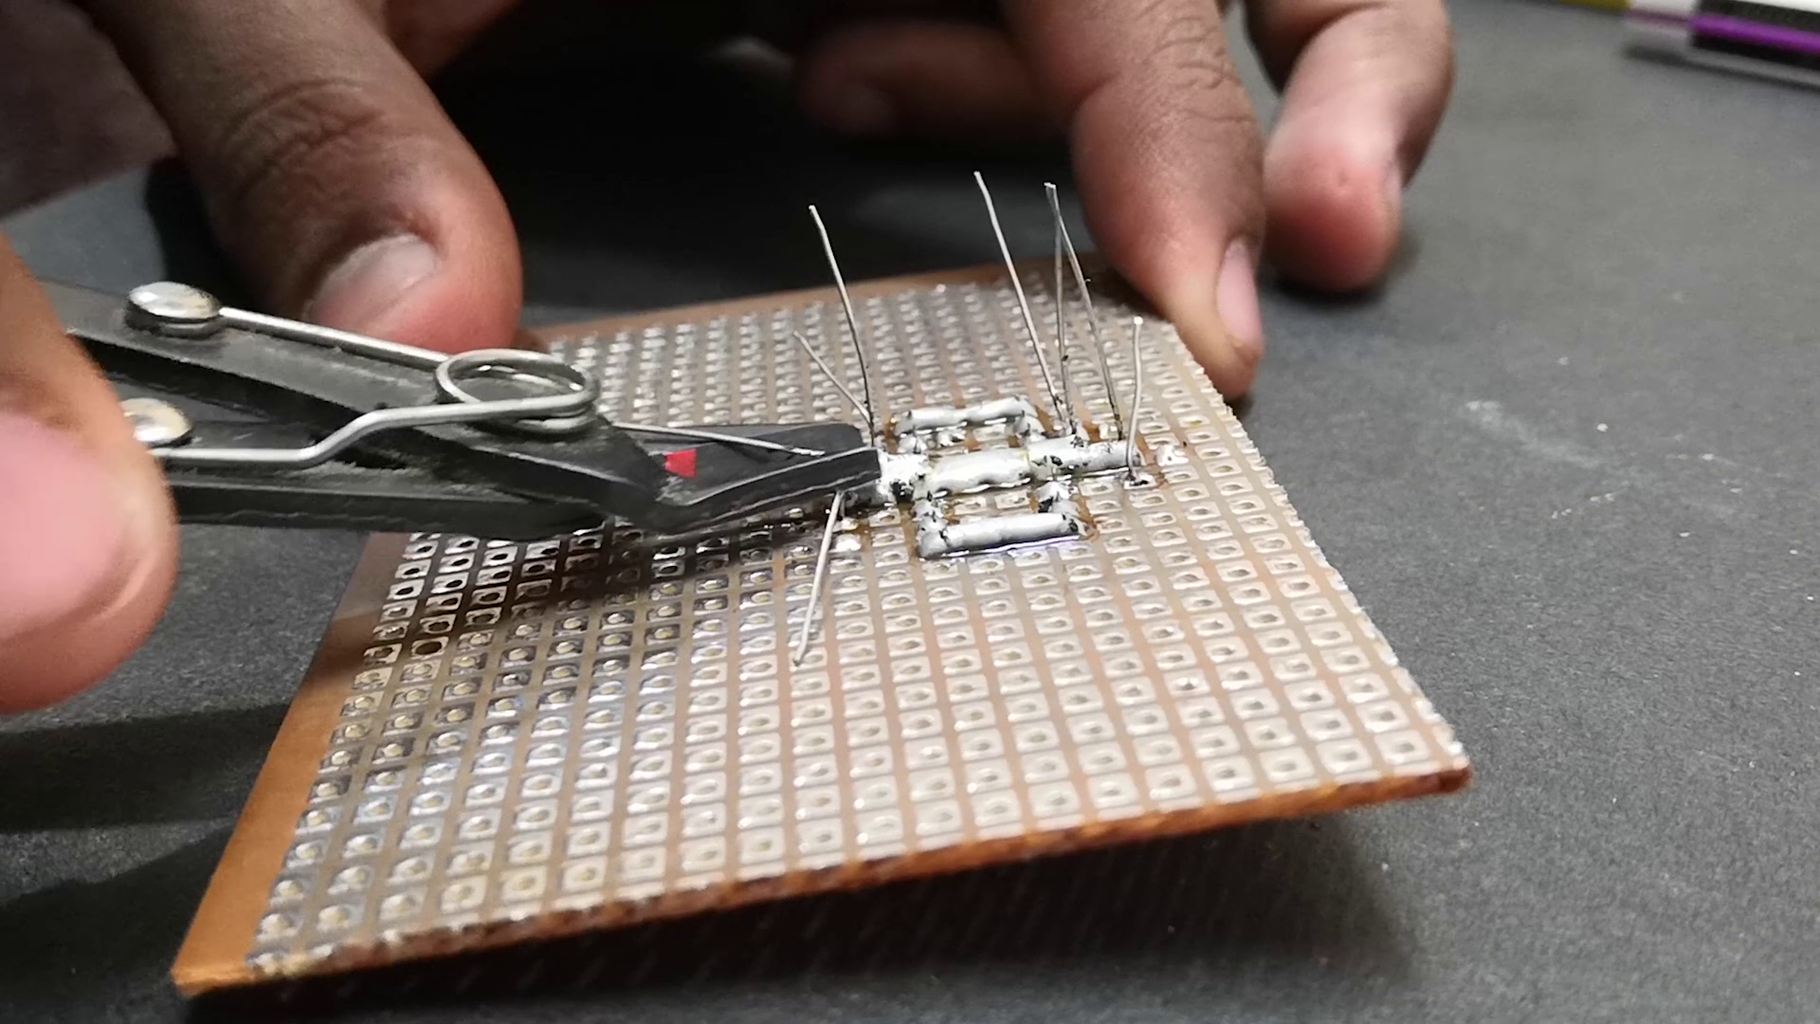 Building the Line Following Robot Circuit